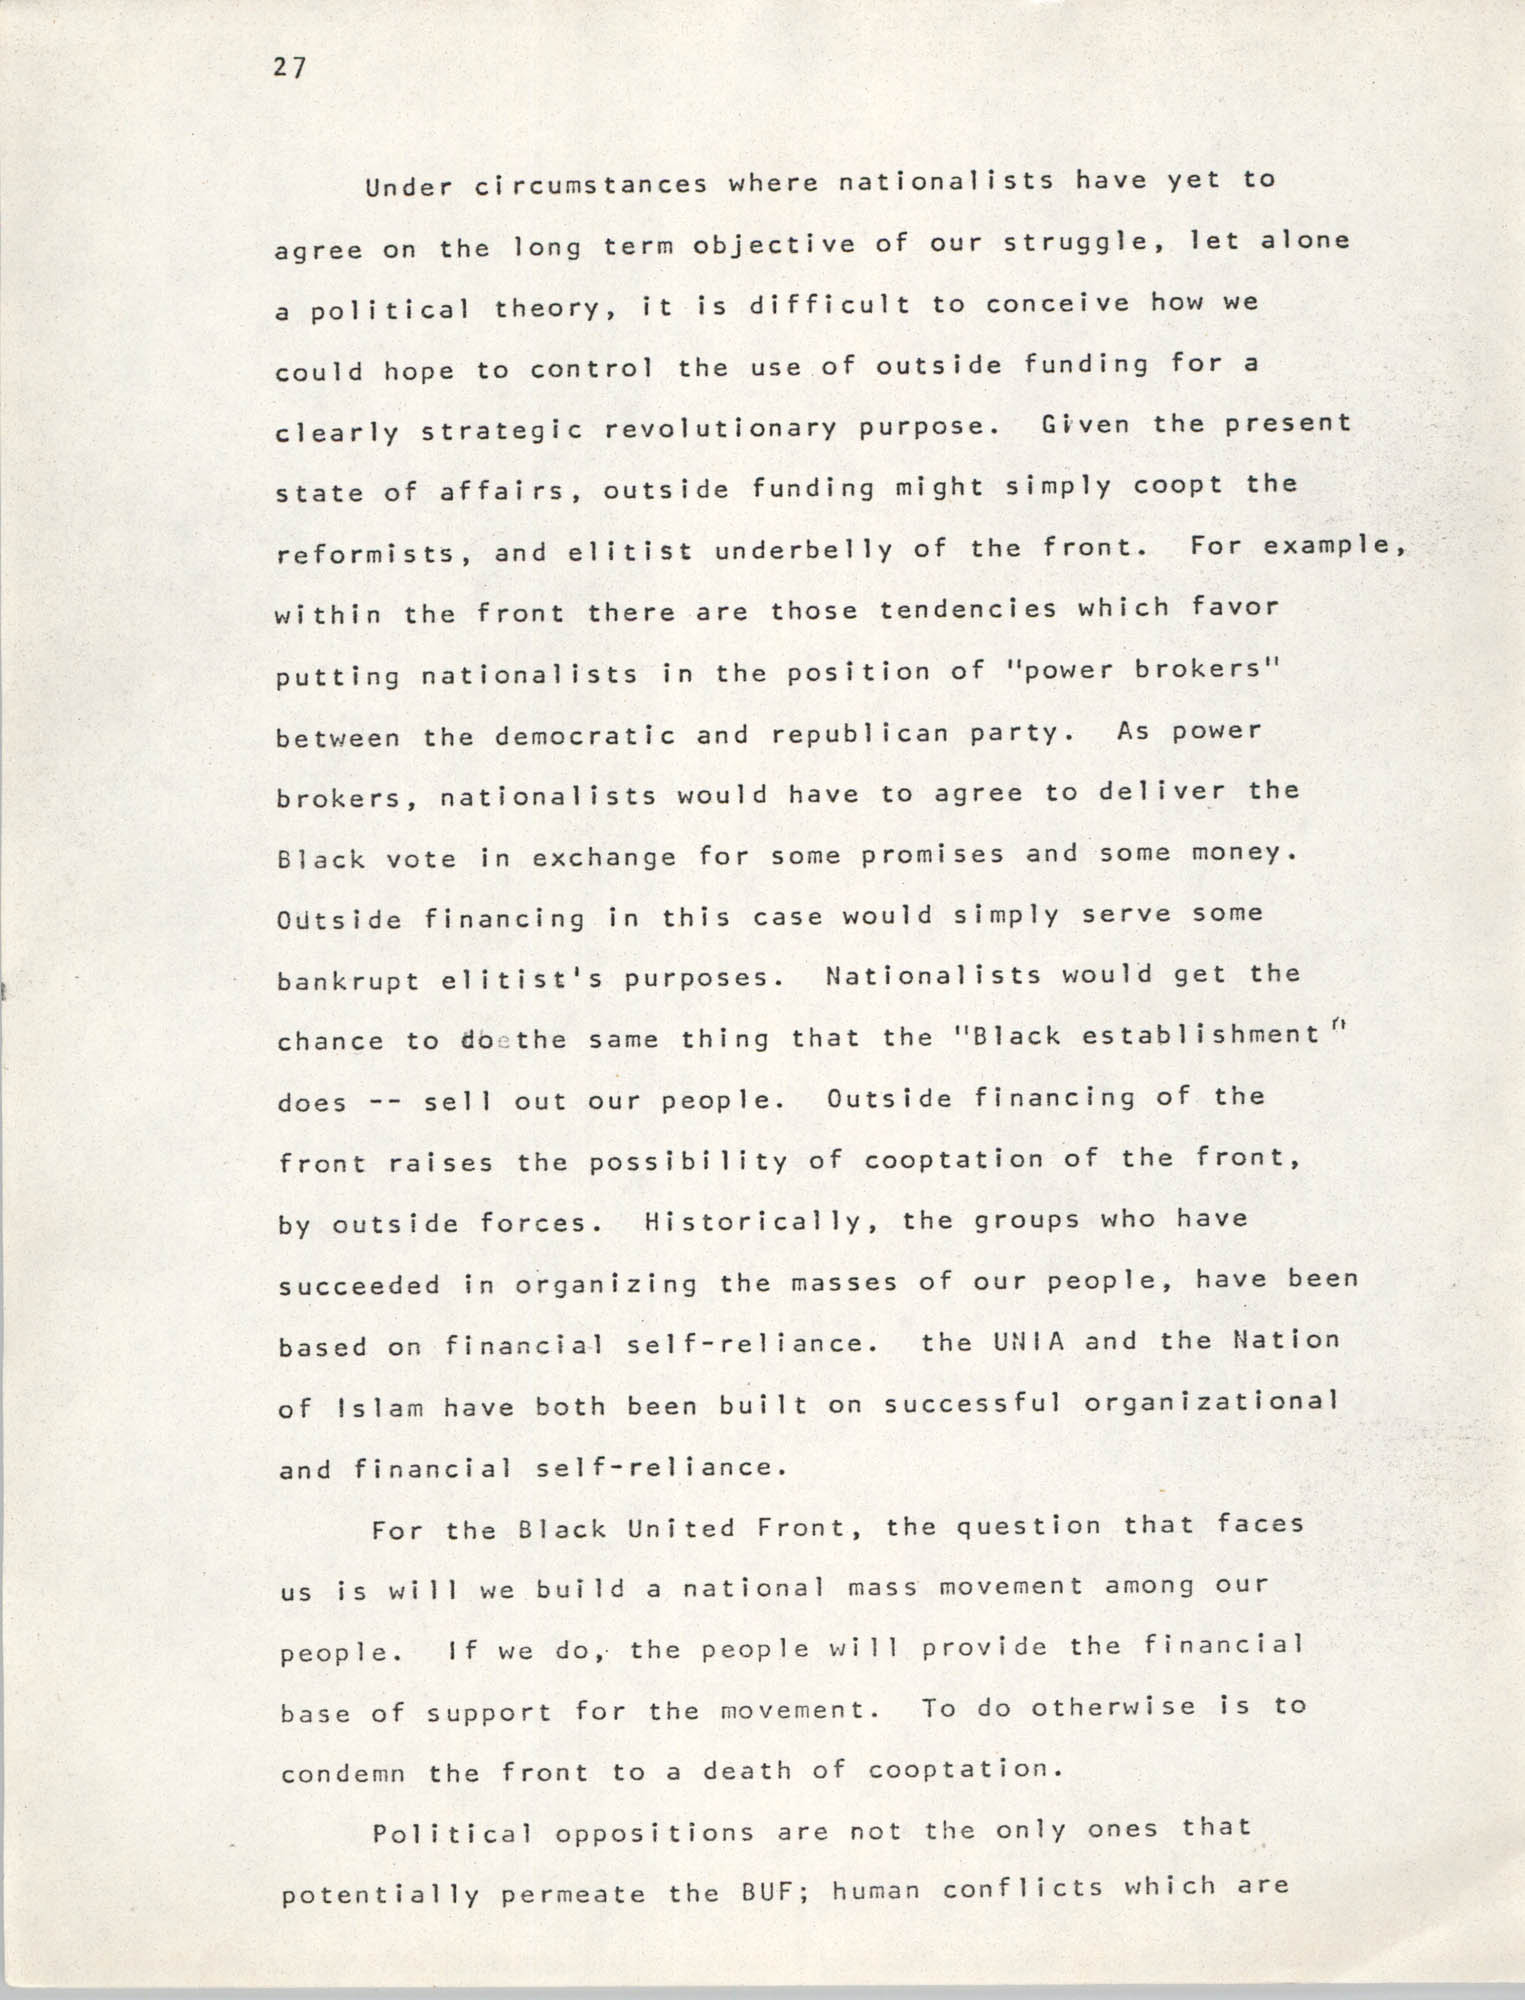 Pan-African Committee of the Black United Front, Page 27